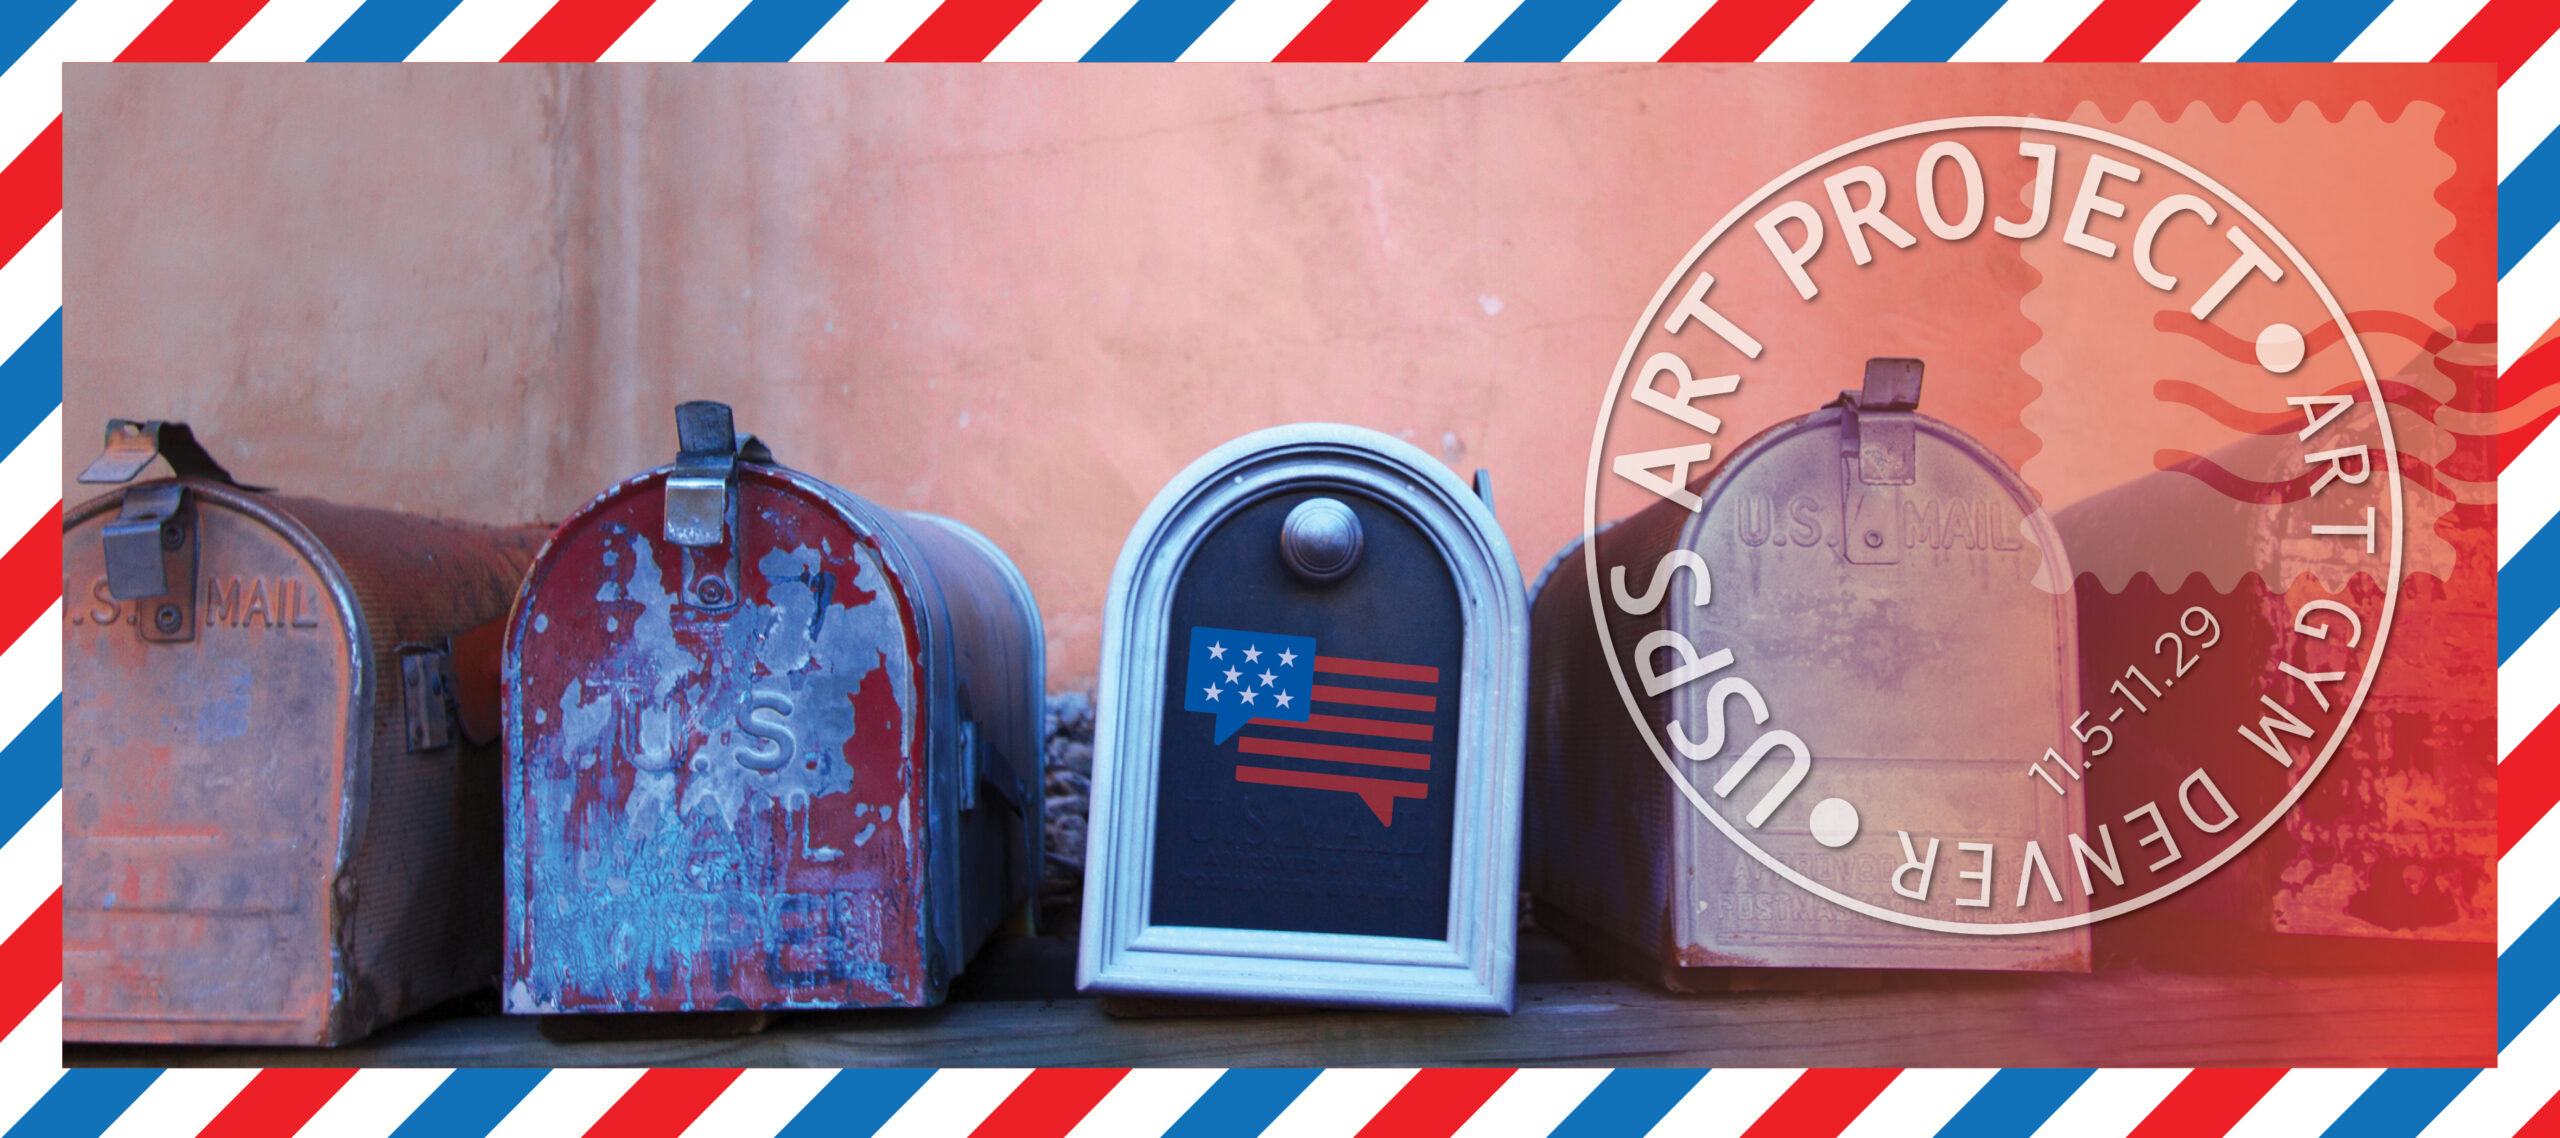 USPS Art Project graphic with mailboxes and stamp design